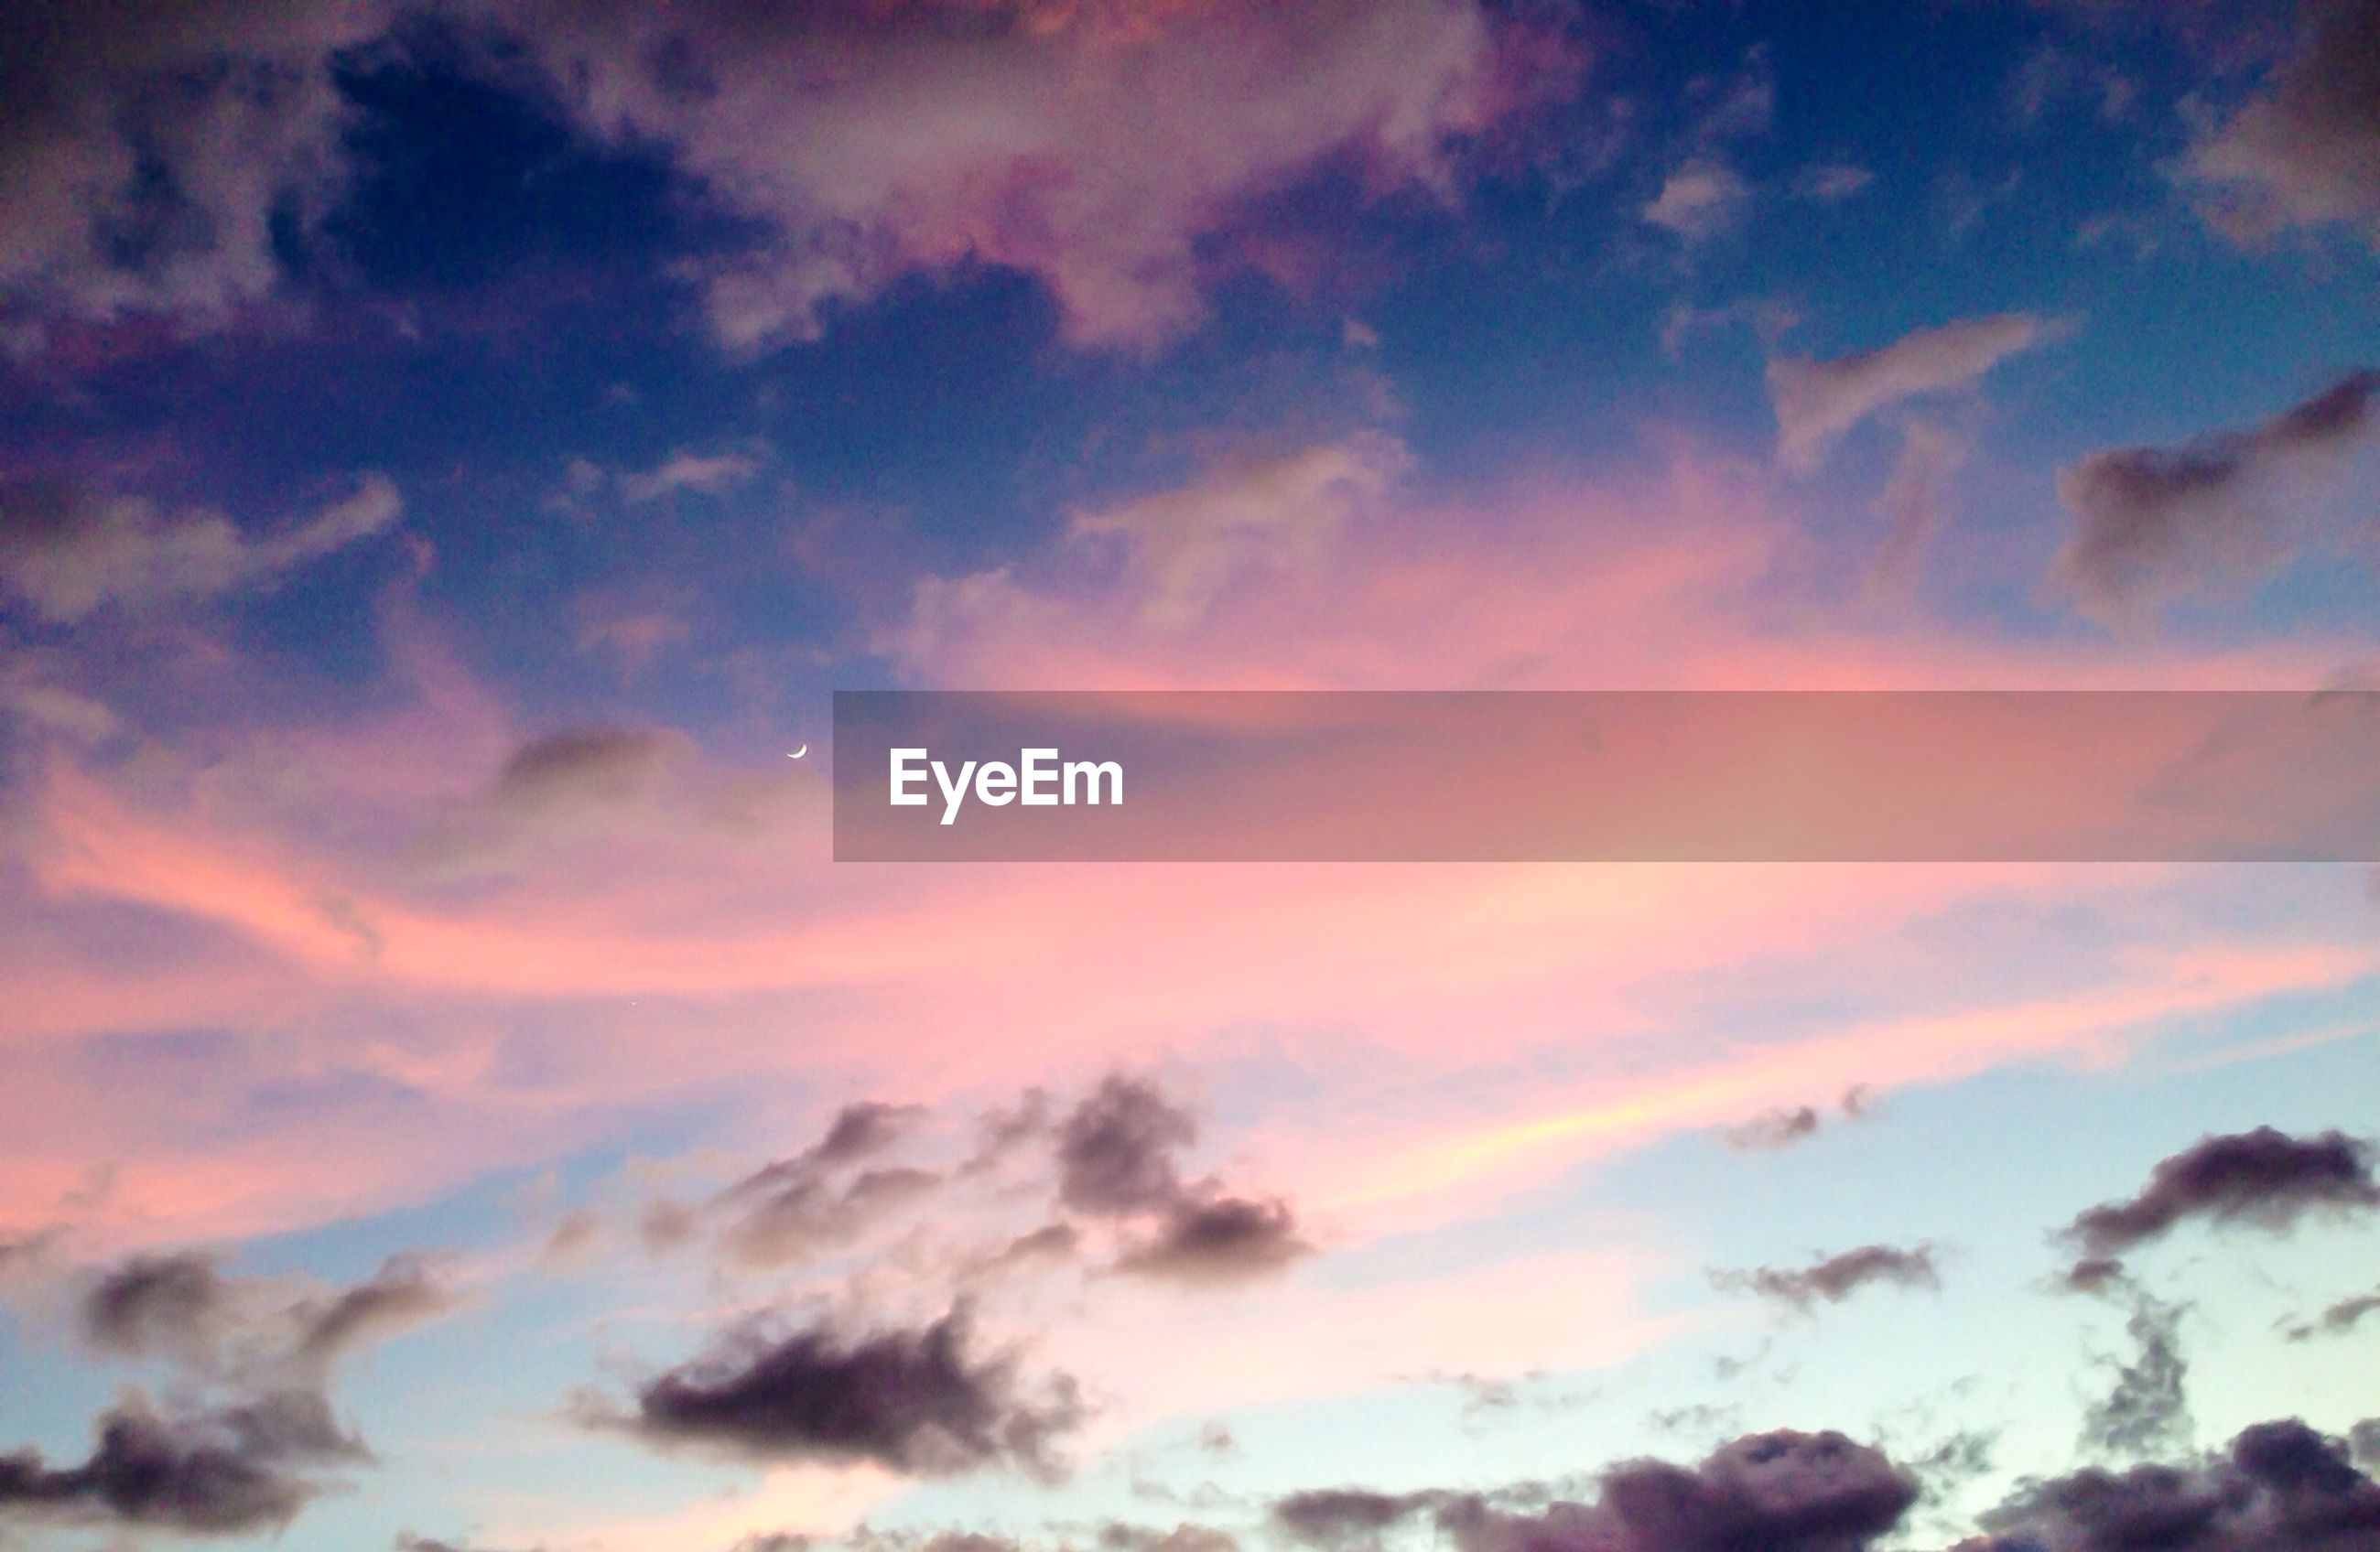 sky, cloud - sky, low angle view, sunset, beauty in nature, cloudy, sky only, tranquility, scenics, nature, backgrounds, cloudscape, tranquil scene, cloud, full frame, orange color, dramatic sky, idyllic, weather, outdoors